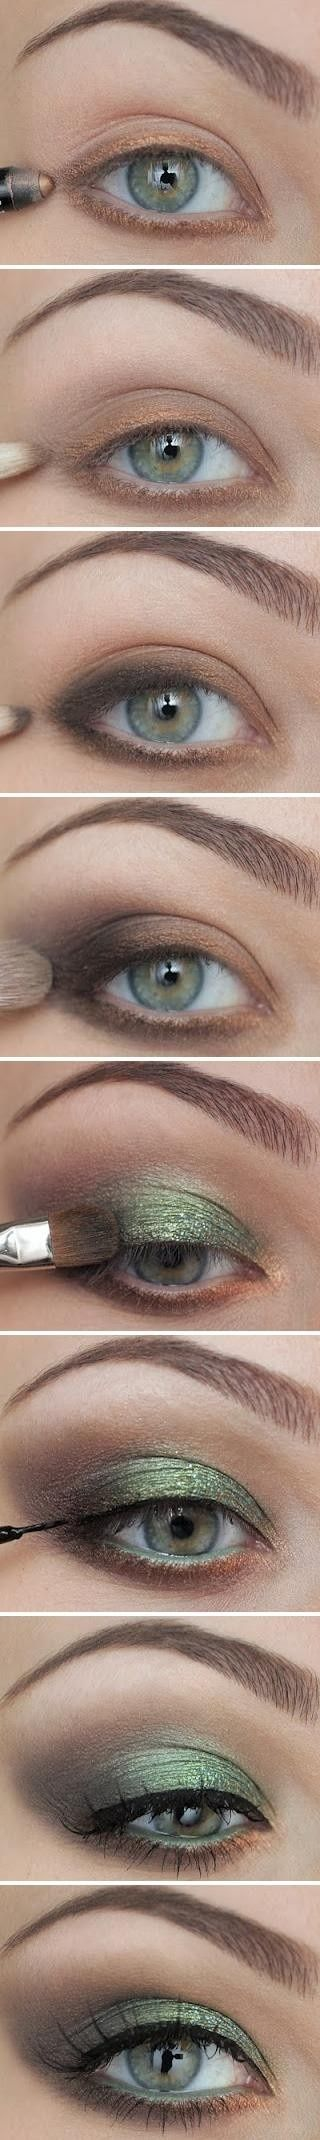 Green and Brown - gorgeous. I love this look for going out on the town for my biz meetings and always wanted to know how to do the smokey eye thing. Yay!